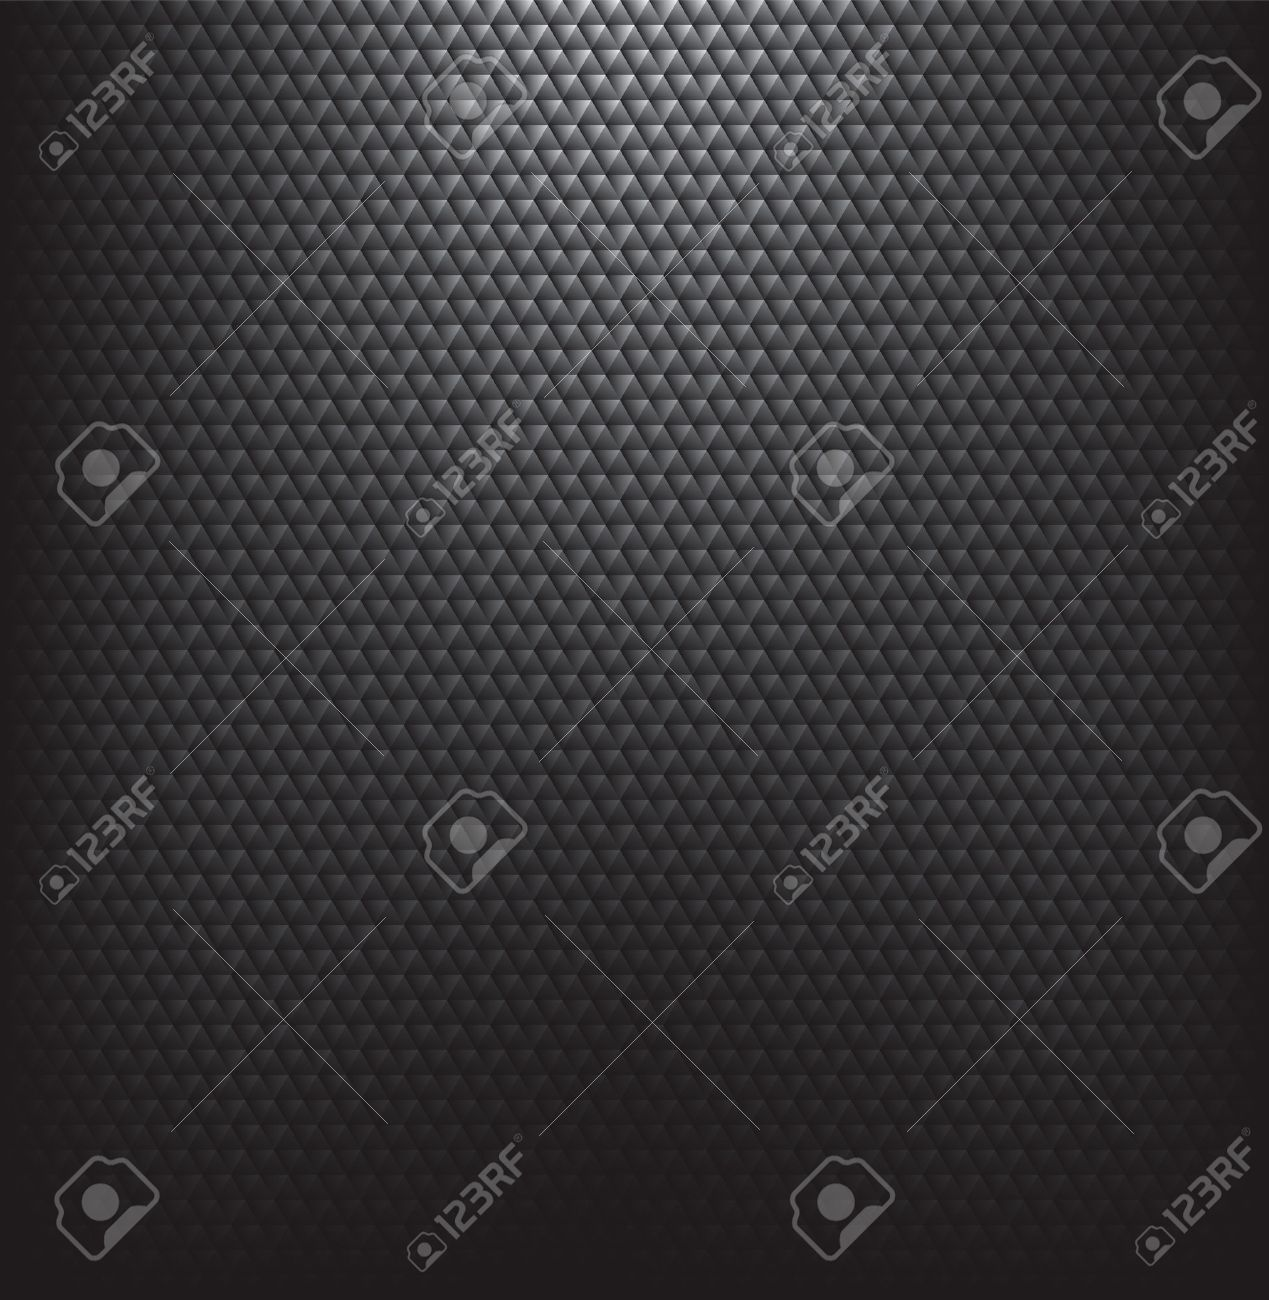 Abstract black textured technical background. - 41070339